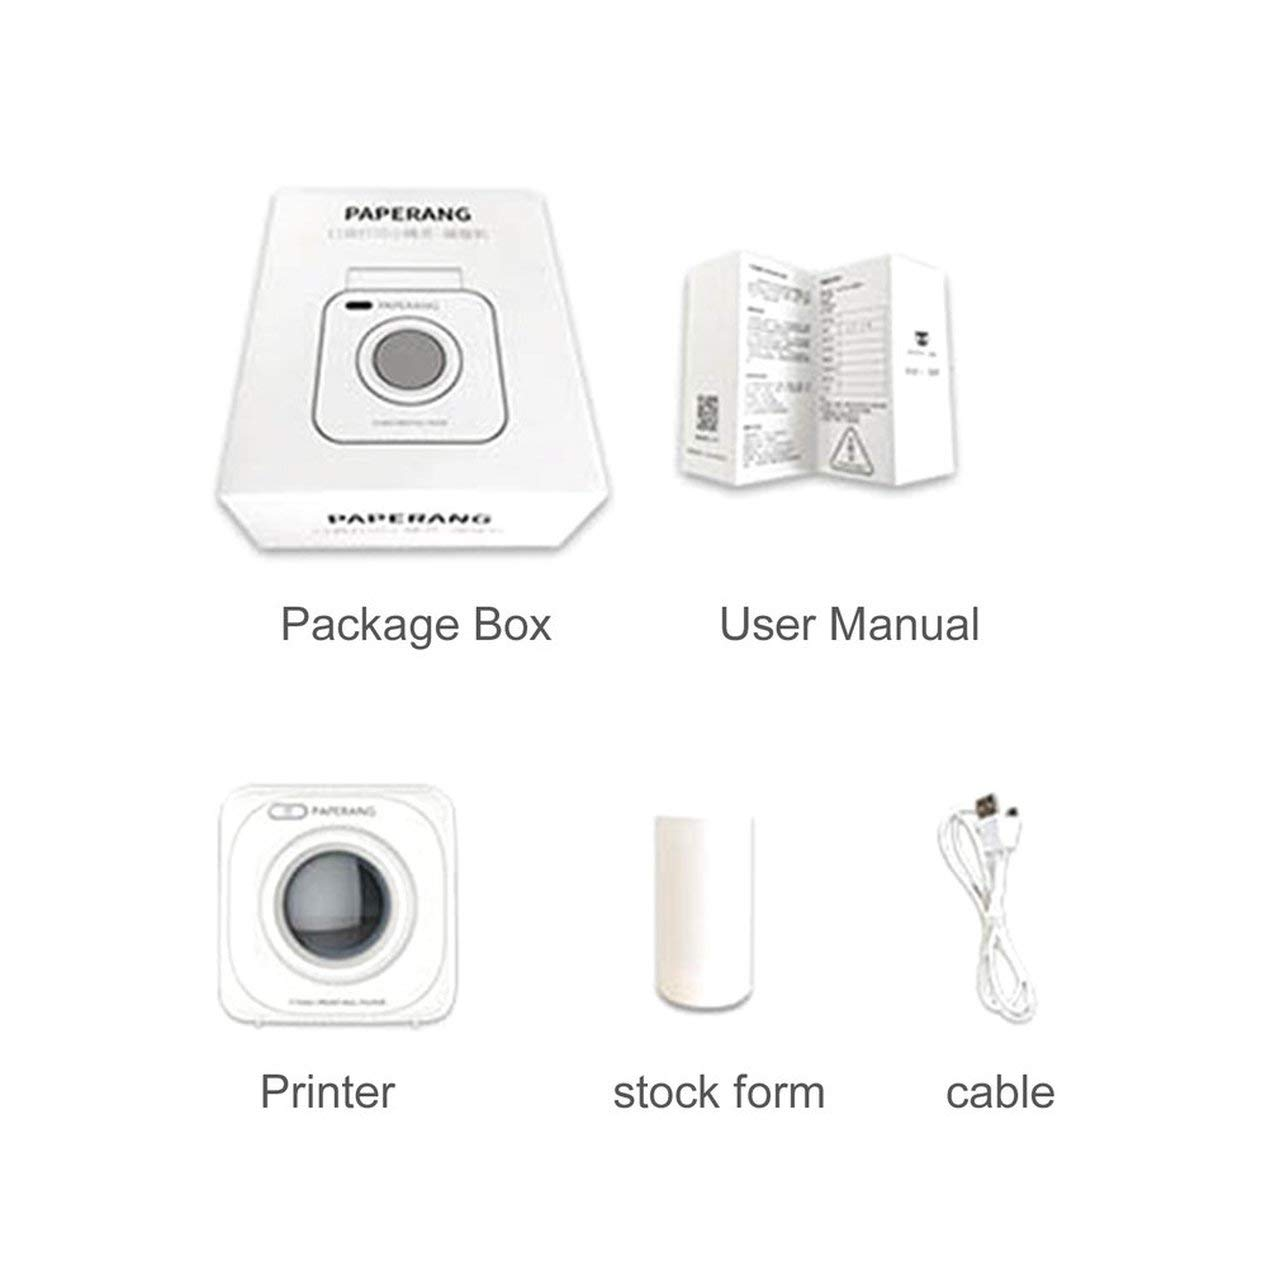 shengerm Paperang P1 Small Size Wireless 4.0 Mobile Phone Instant Photo Printer Digital Picture Printing 1000MAH Battery